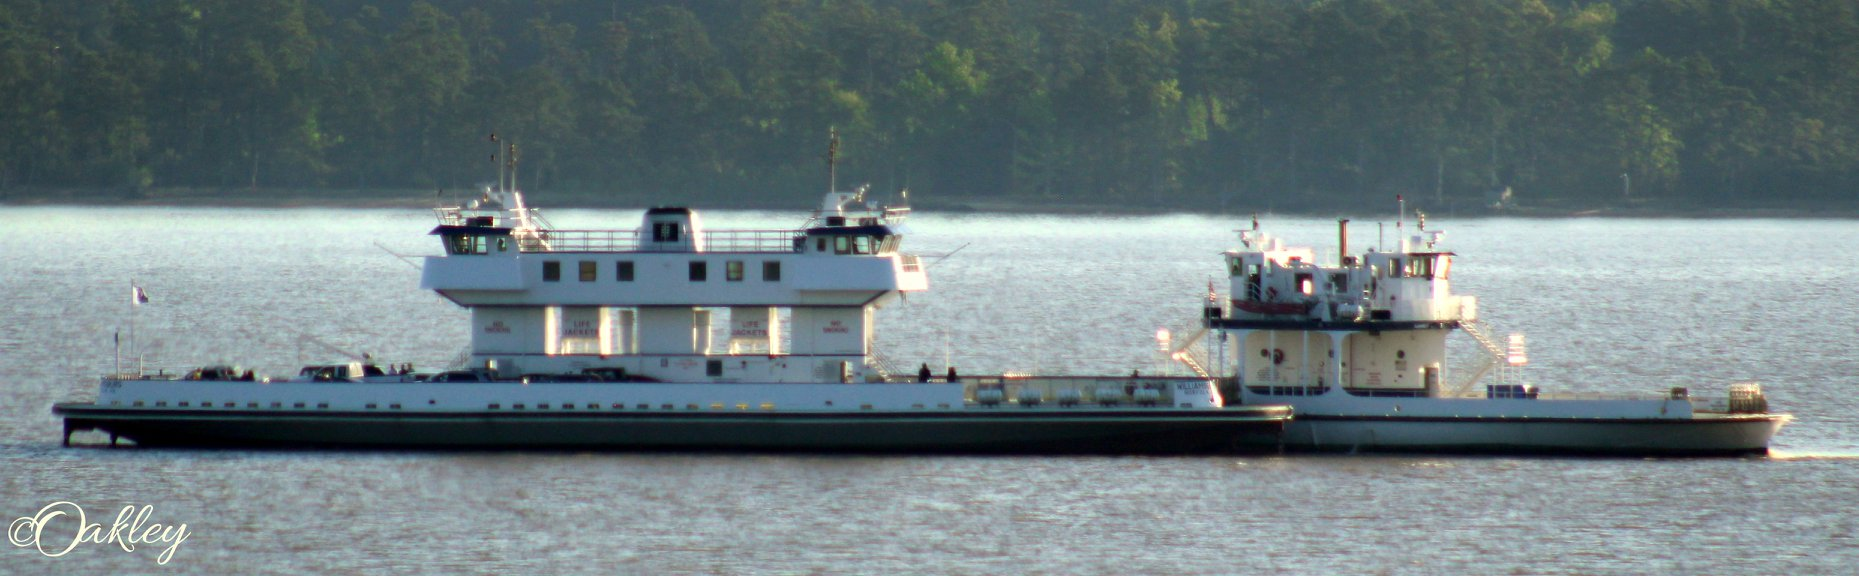 Two ferries suffer mechanical issues at Jamestown-Scotland Ferry